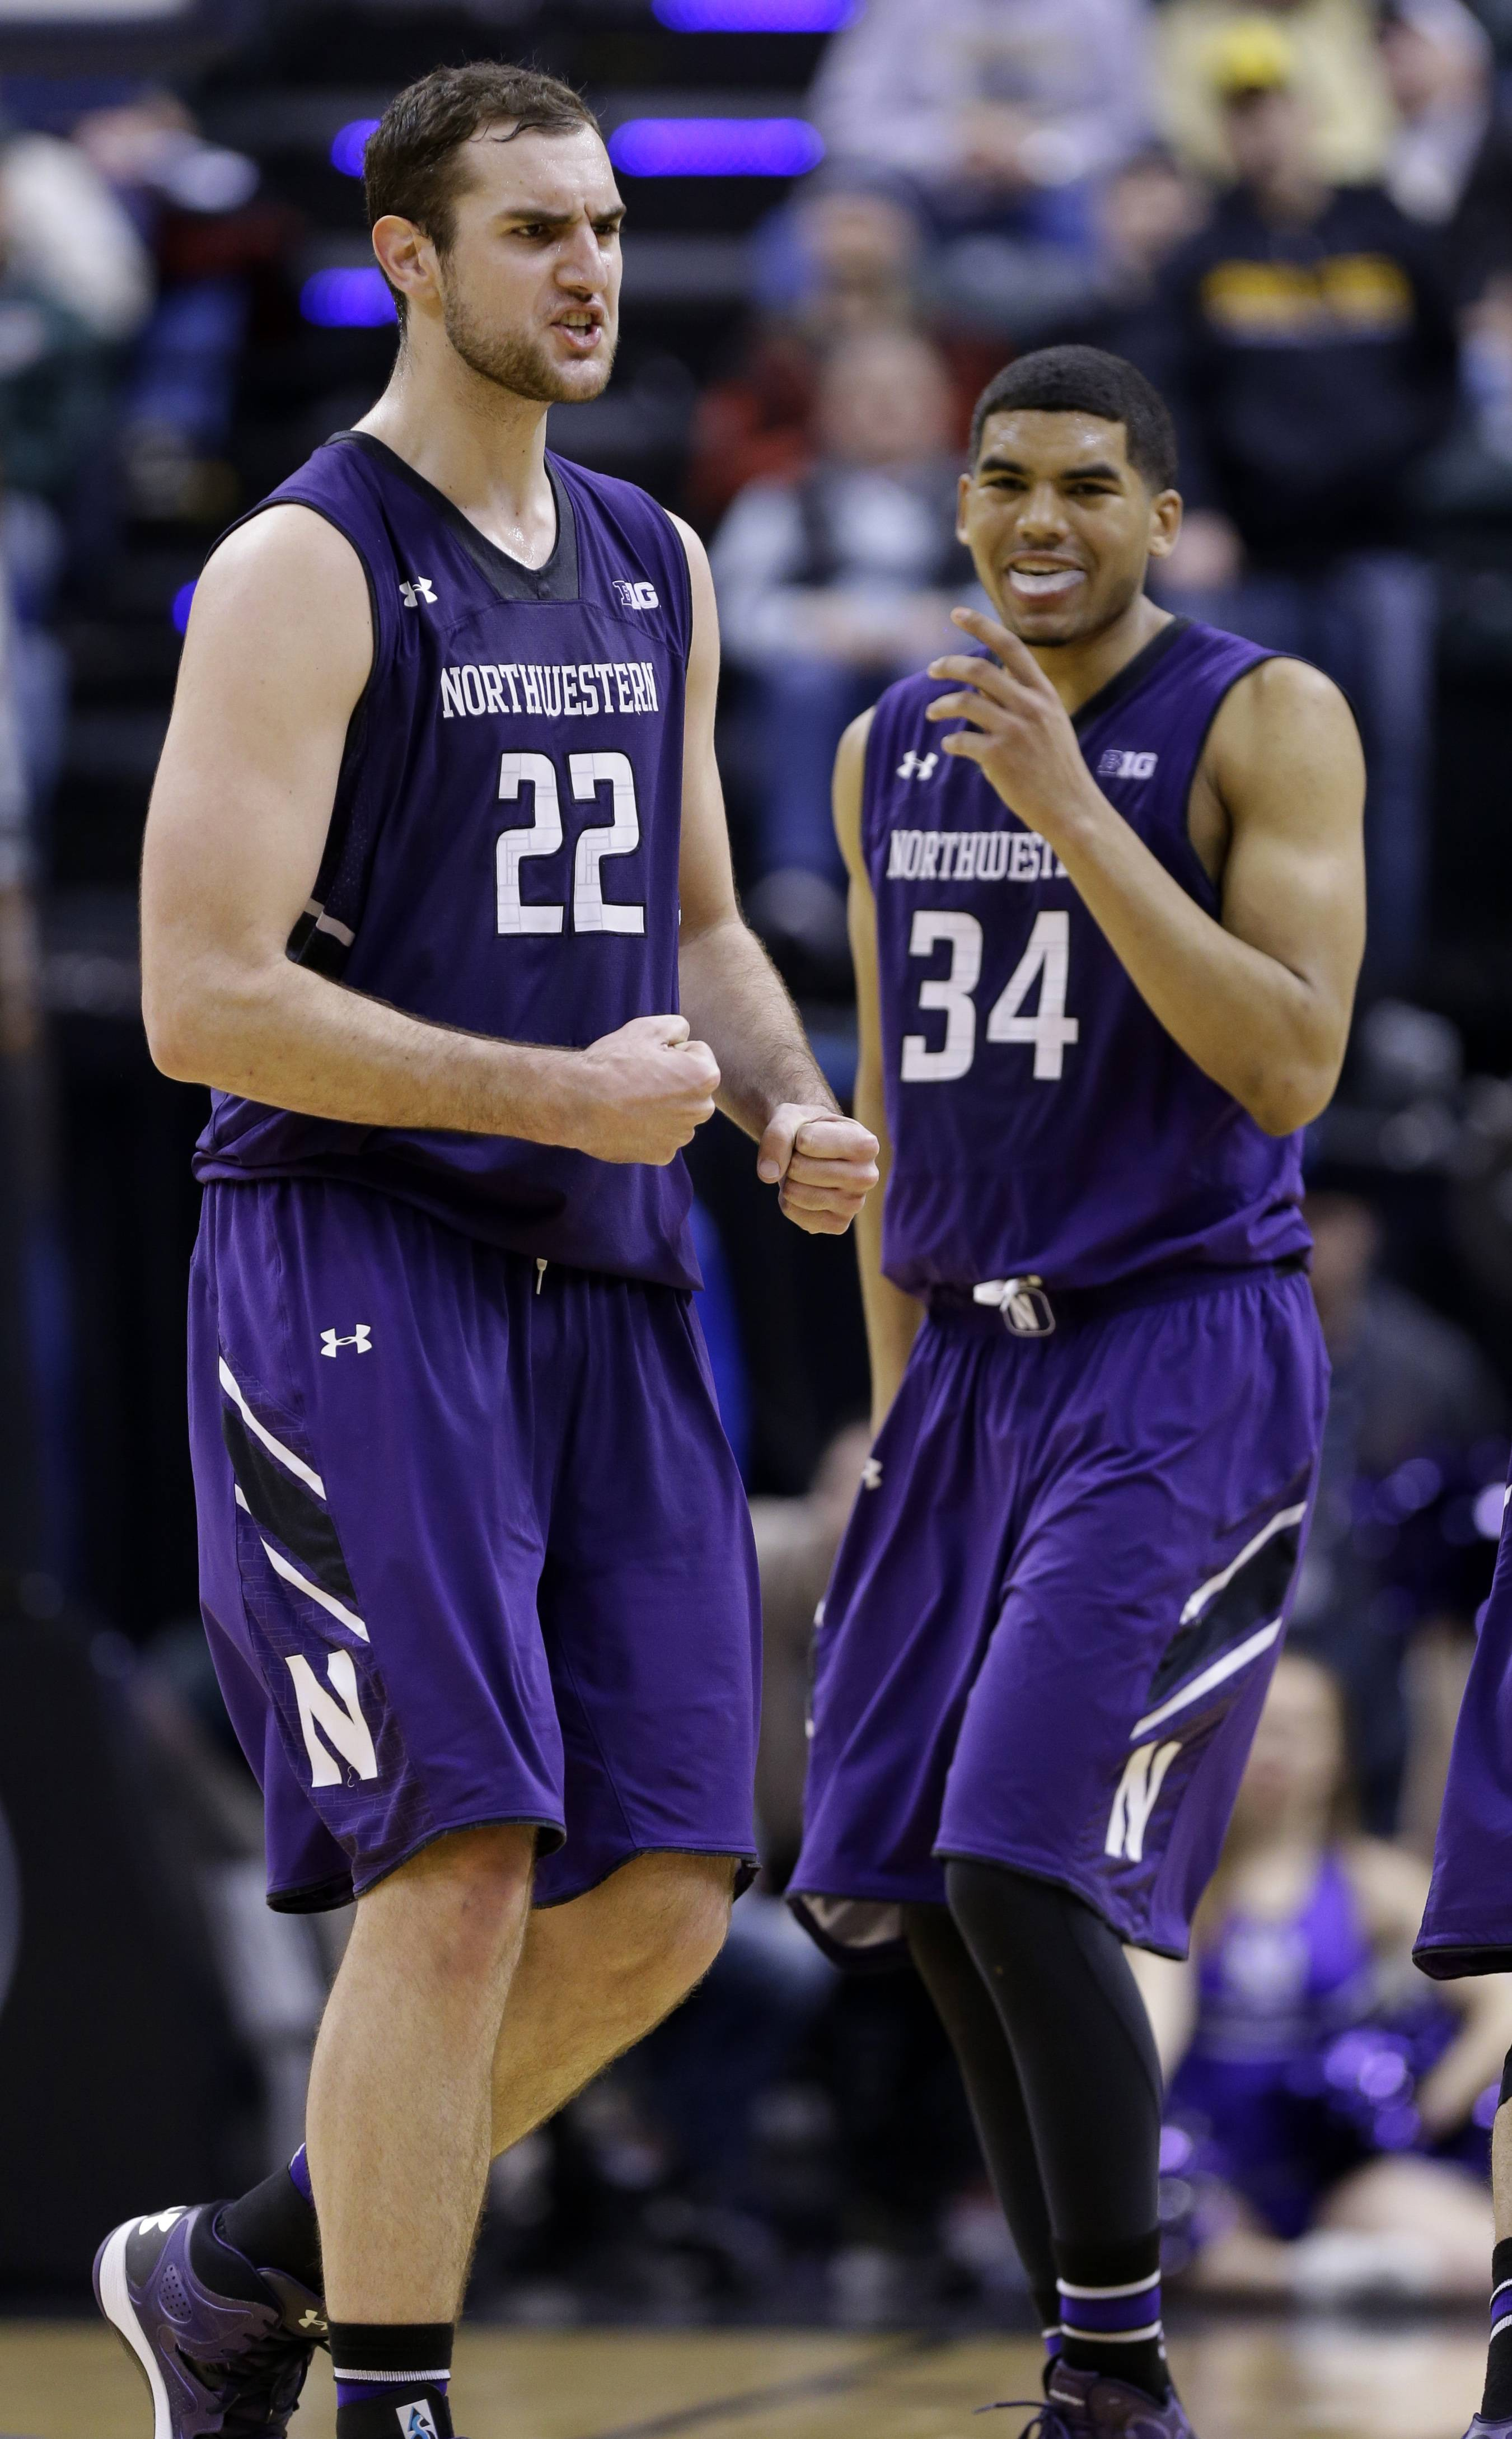 Northwestern center Alex Olah (22) pumps his fists after making free throws in the second half of an NCAA college basketball game against Iowa in the first round of the Big Ten Conference tournament, Thursday, March 13, 2014, in Indianapolis. At right is Northwestern guard/forward Sanjay Lumpkin. Northwestern won 67-62. (AP Photo/Michael Conroy)